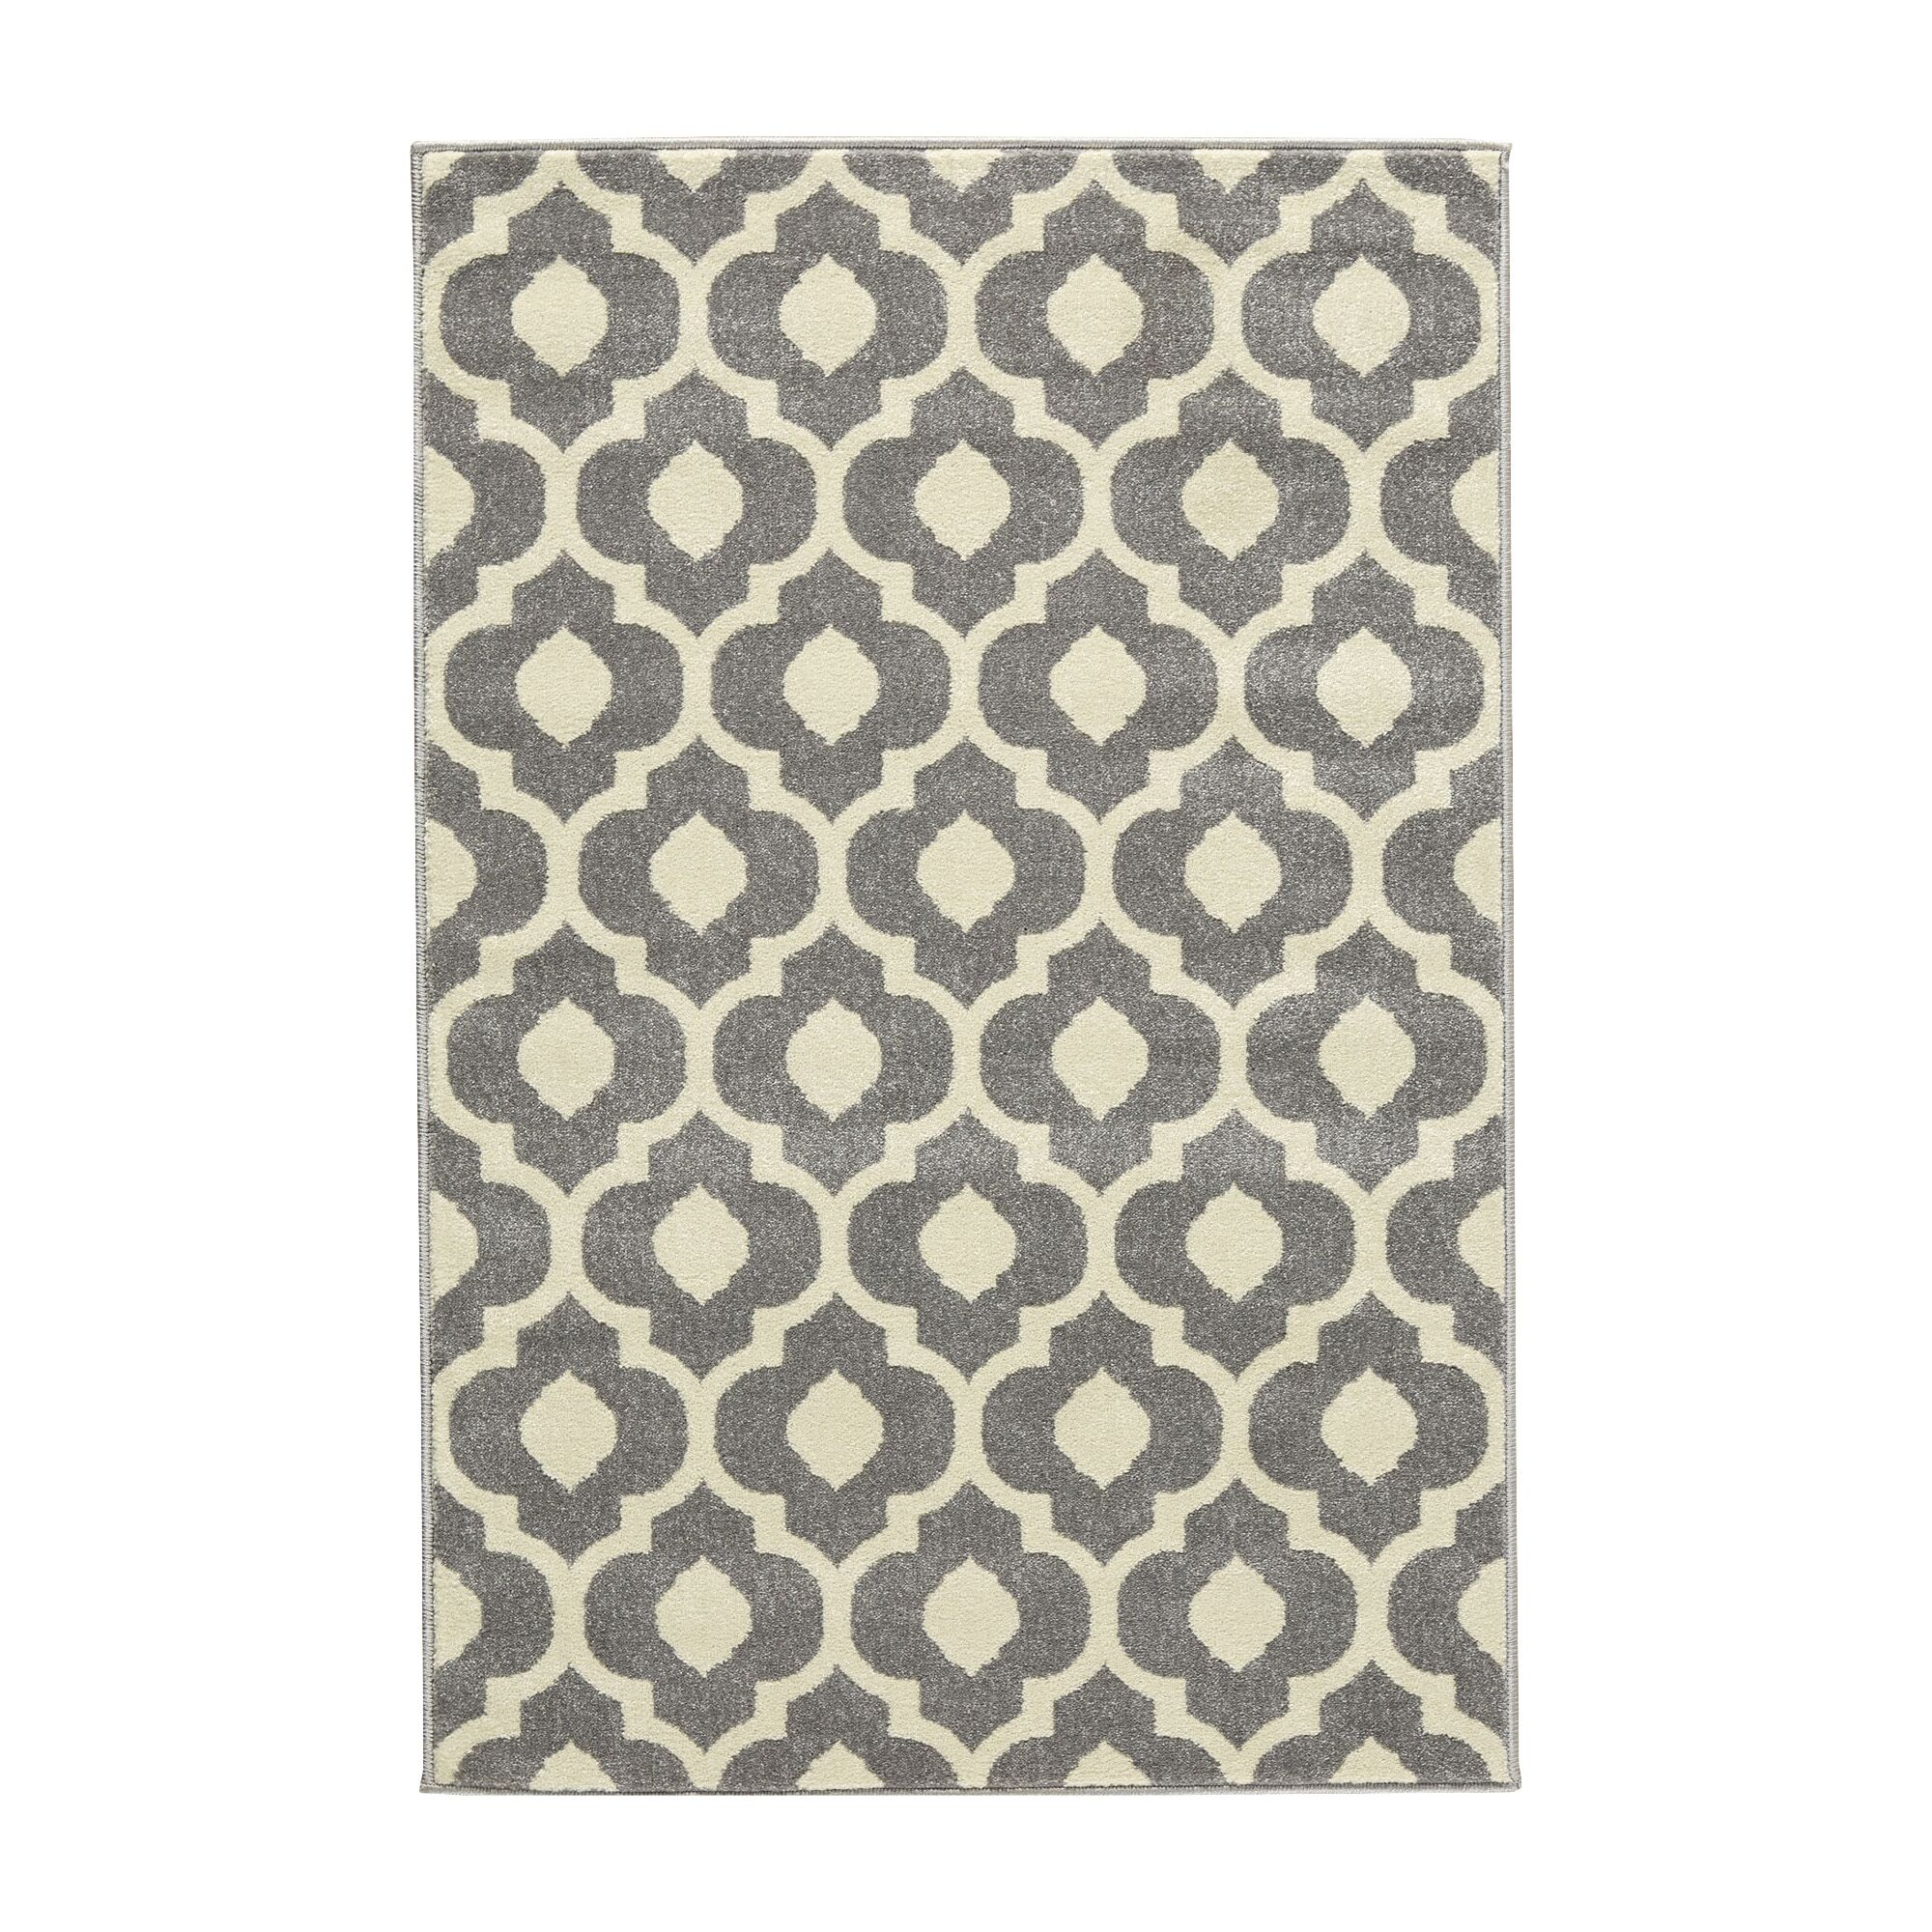 Oak Knoll Ivory/Light Grey Area Rug Rug Size: Runner 2'7